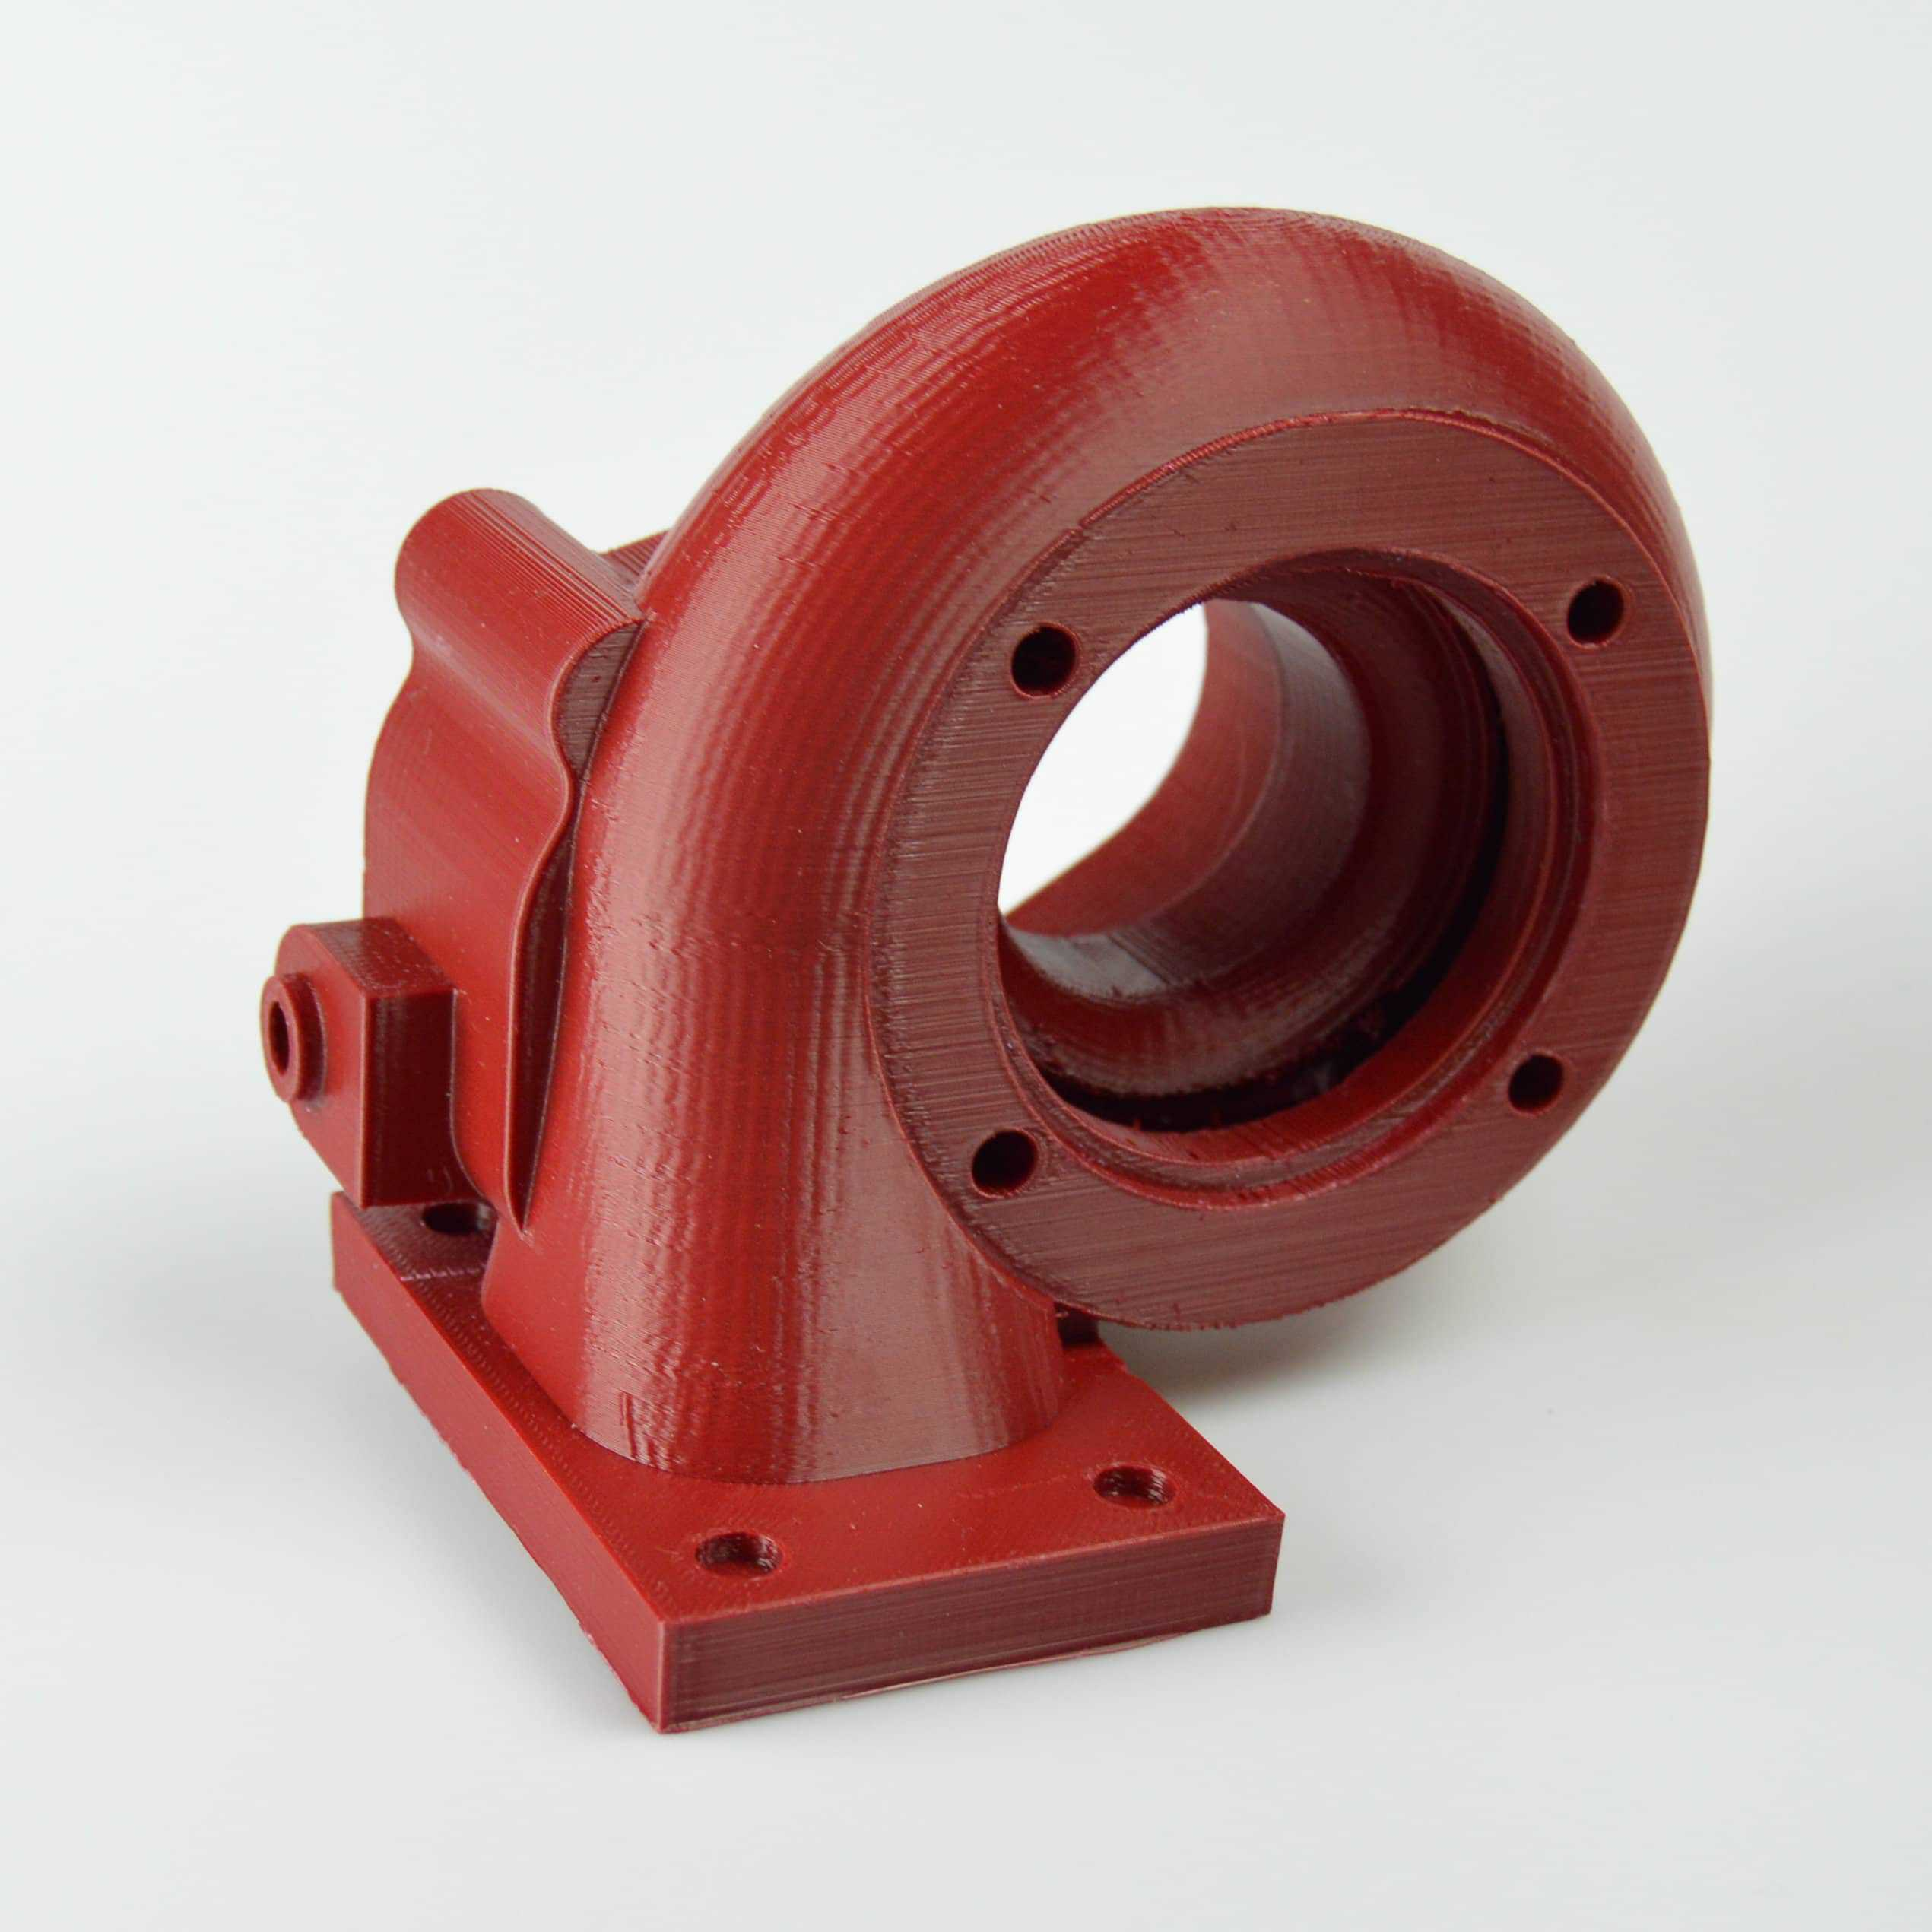 Large ABS 3D printed part